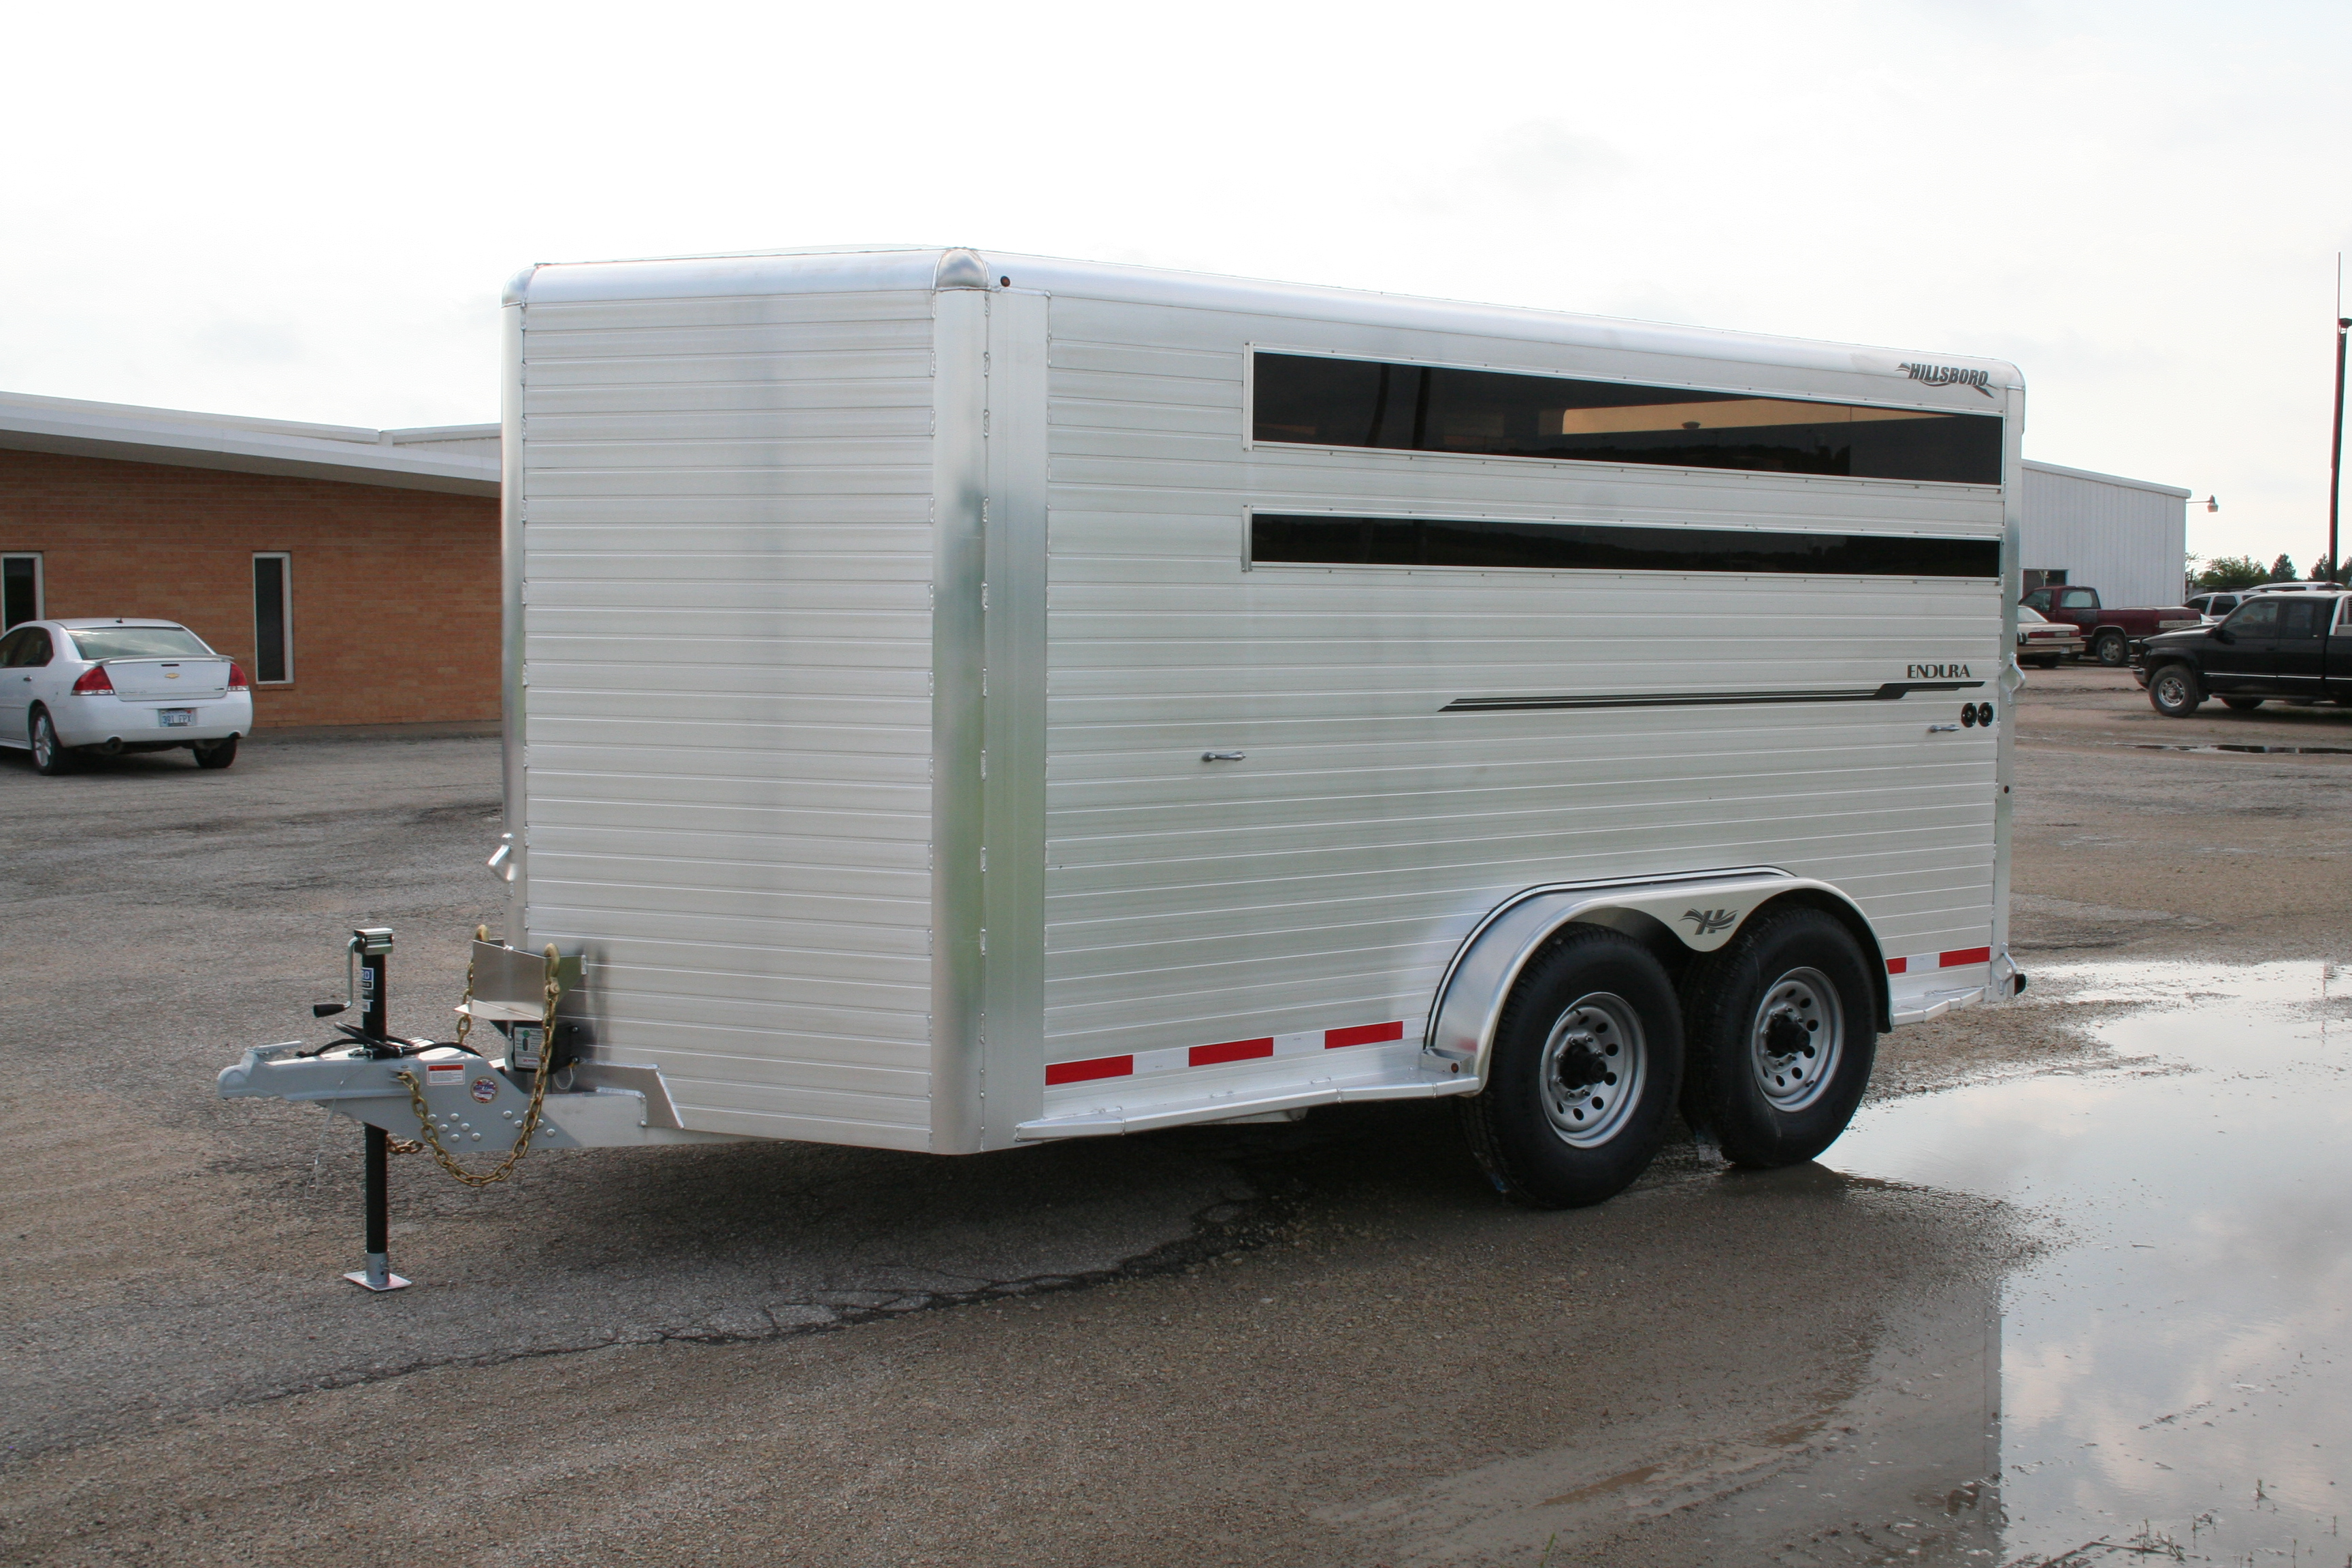 Endura Livestock Trailer Hillsboro Trailers And Truckbeds Horse Light Diagram Bumper Hitch With Optional Plexiglass Toggle Switches For Lighting